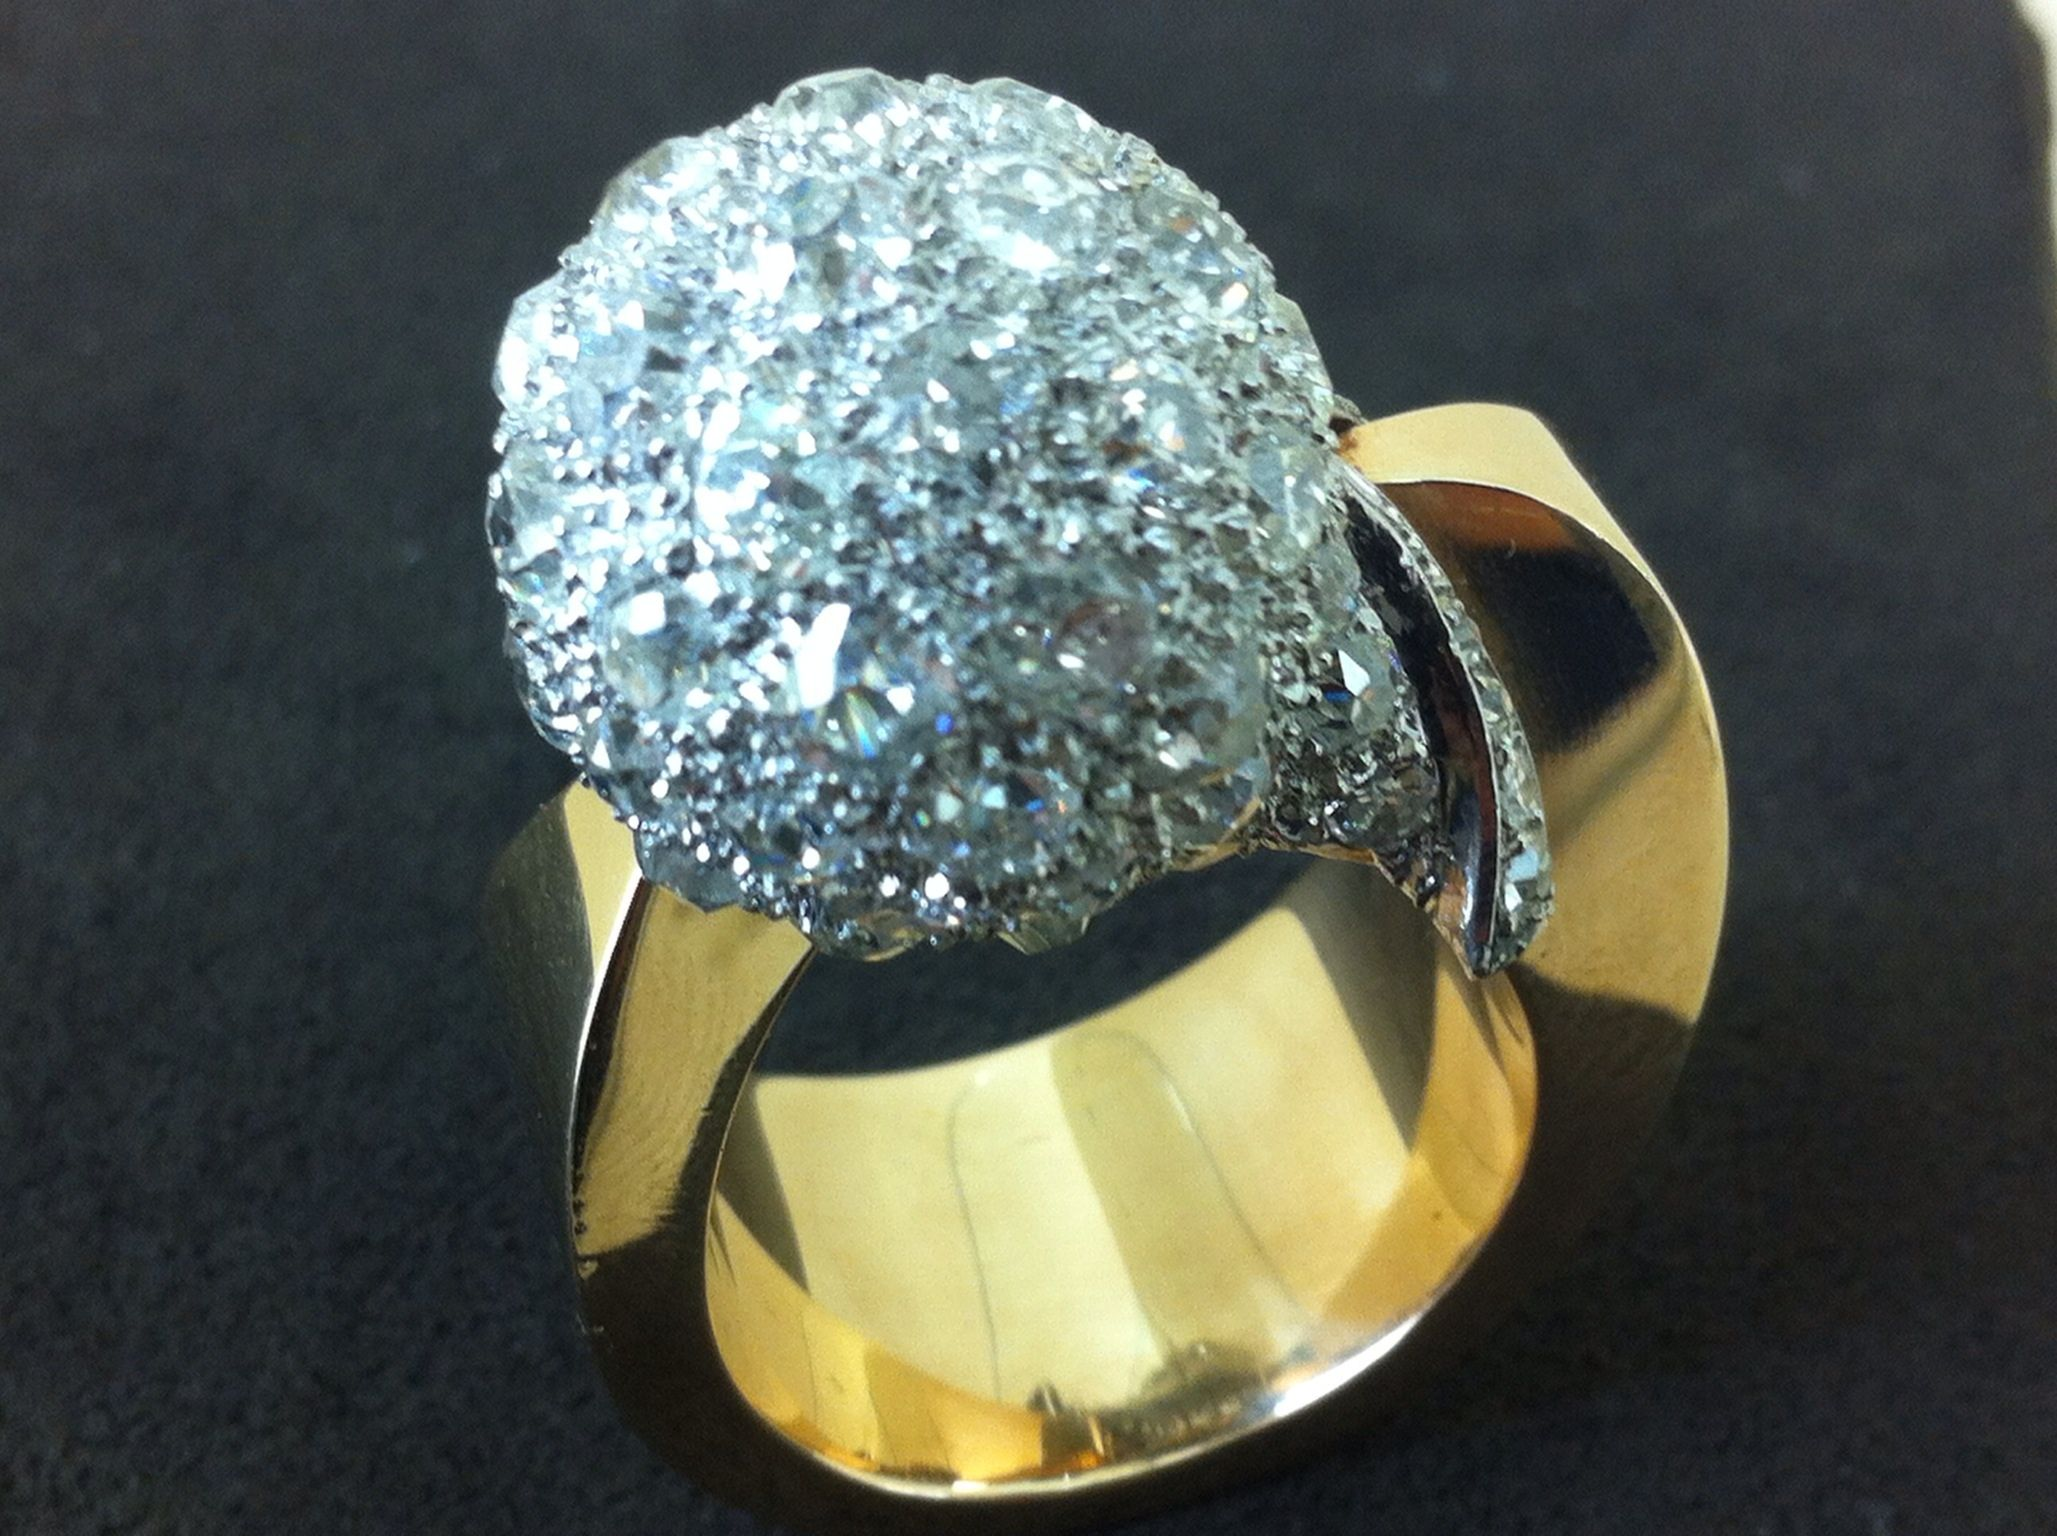 Forties american ring yellow gold and Diamond pavé sphere USA 1940